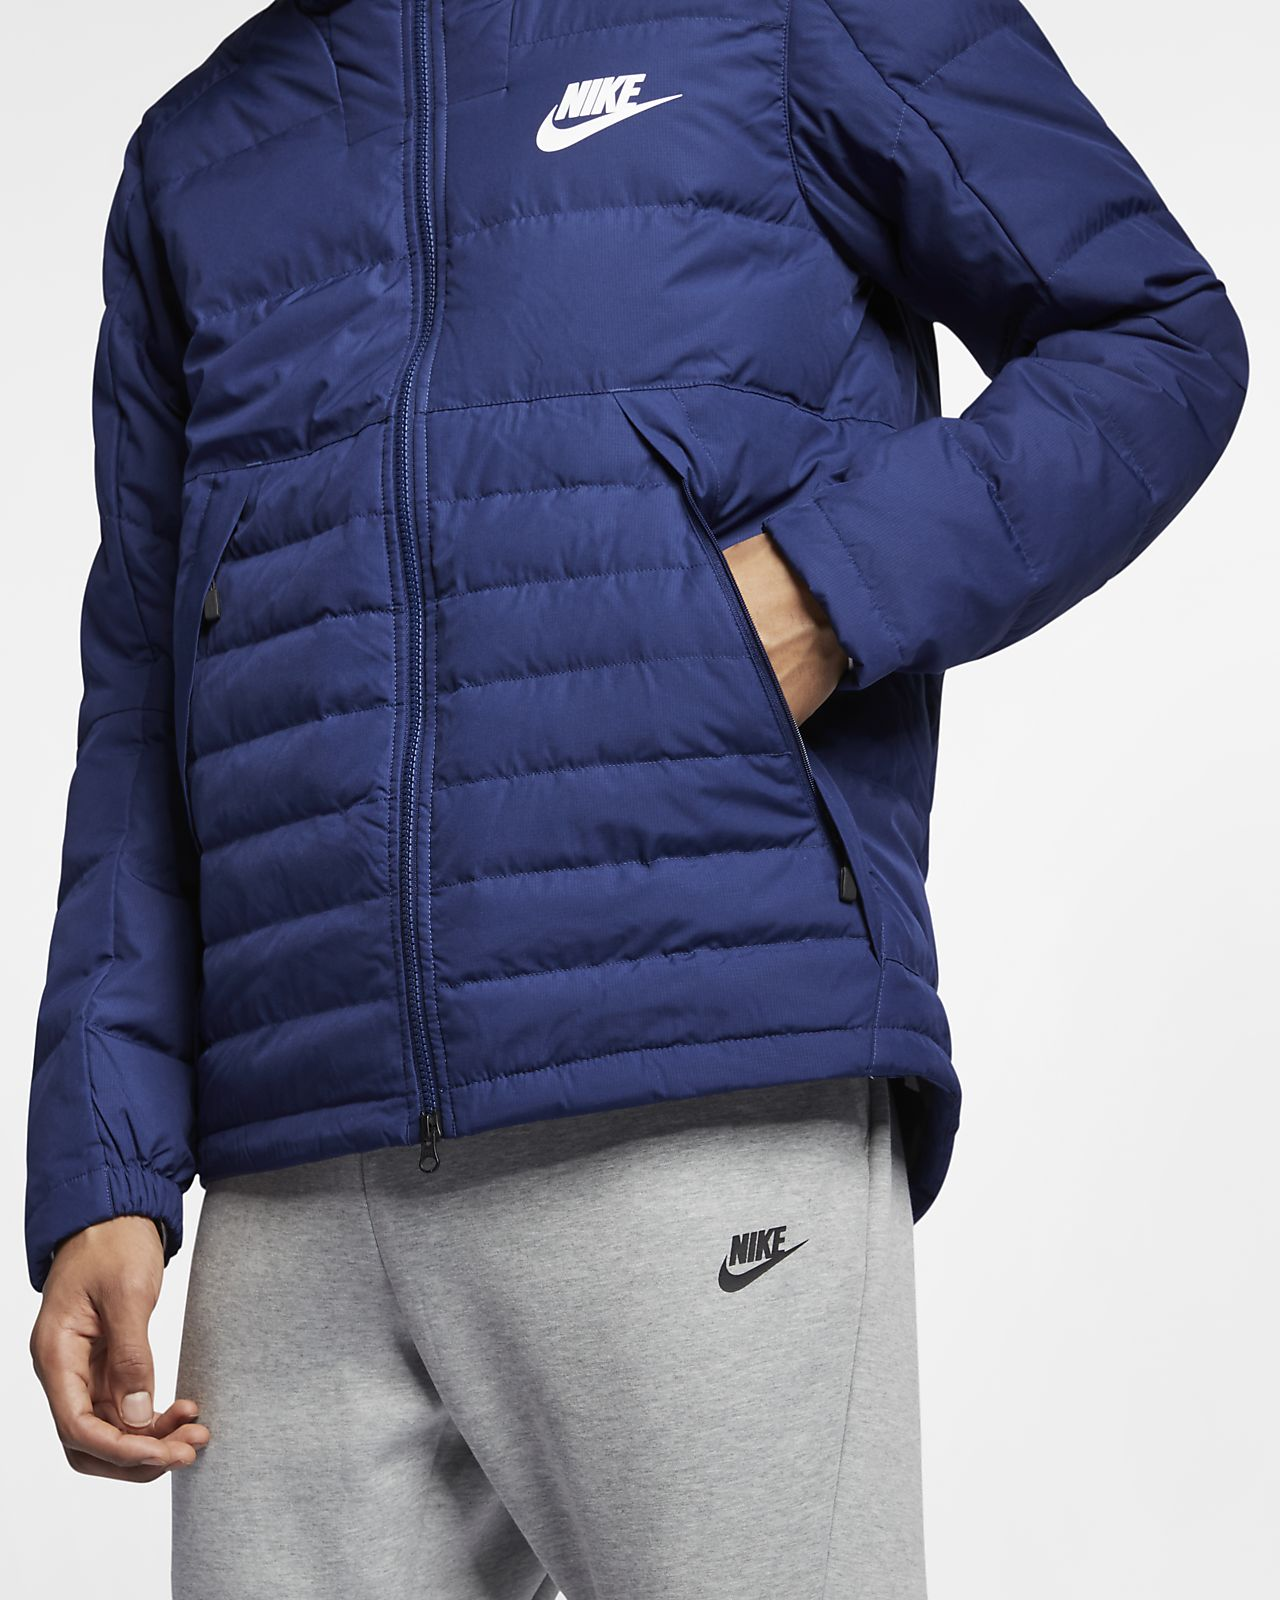 ce05ccf2efc3 Nike Sportswear Down-Fill Men s Hooded Jacket. Nike.com AE